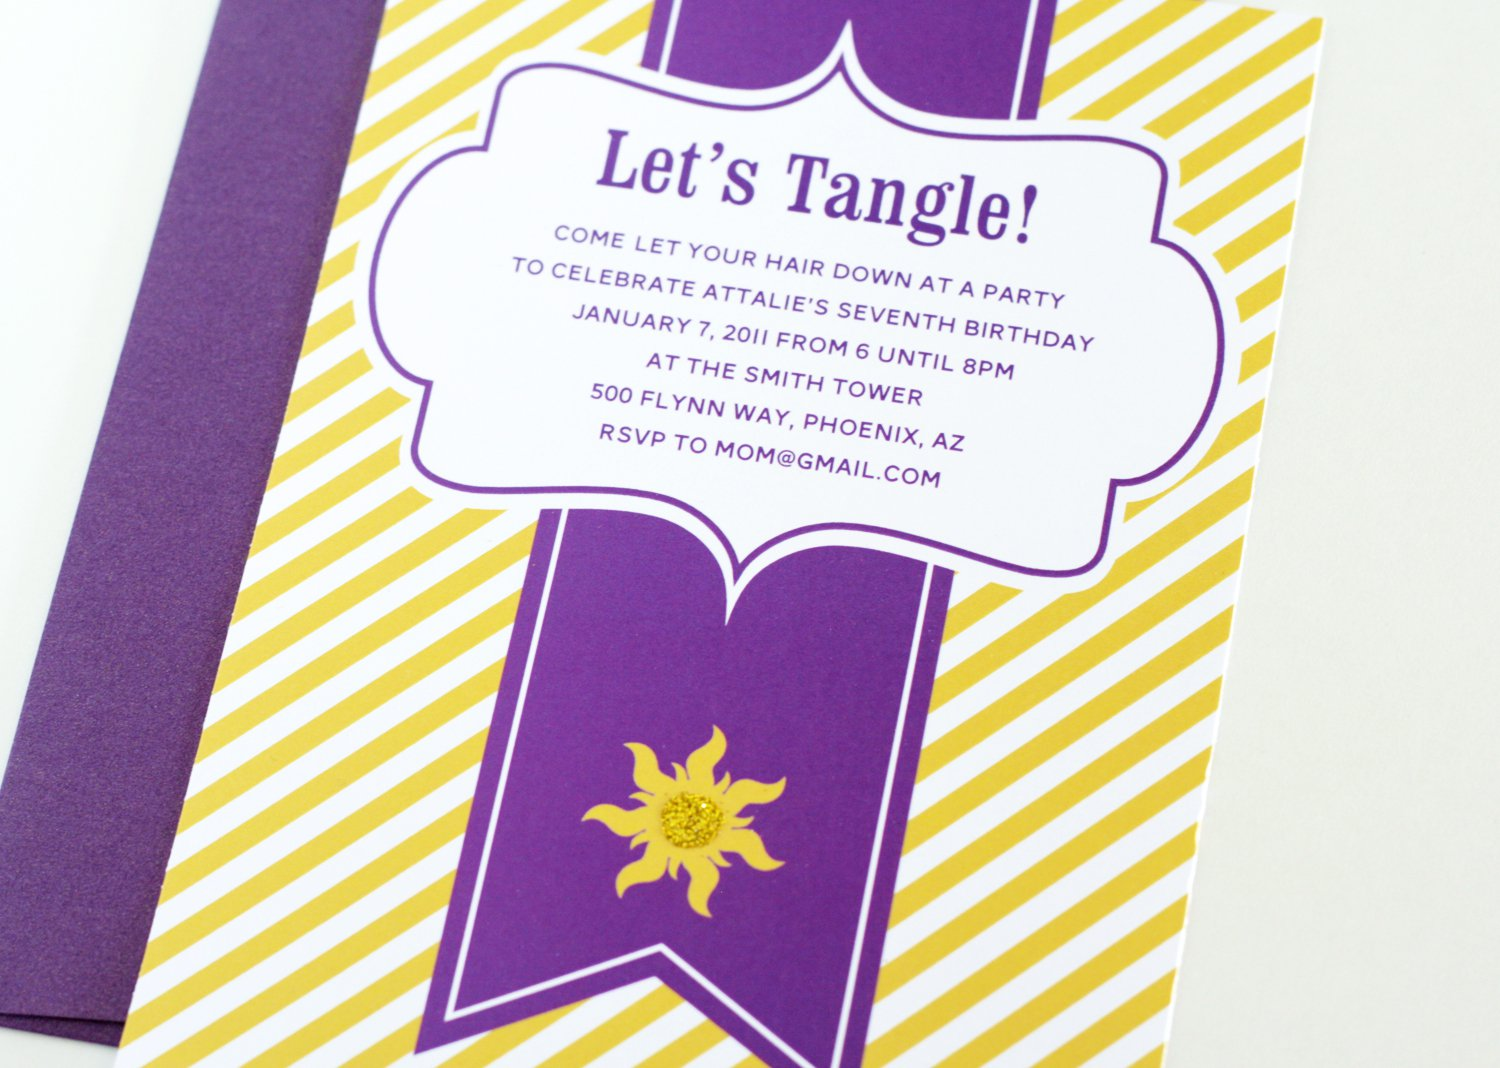 Tangled Birthday Party Invitation Template